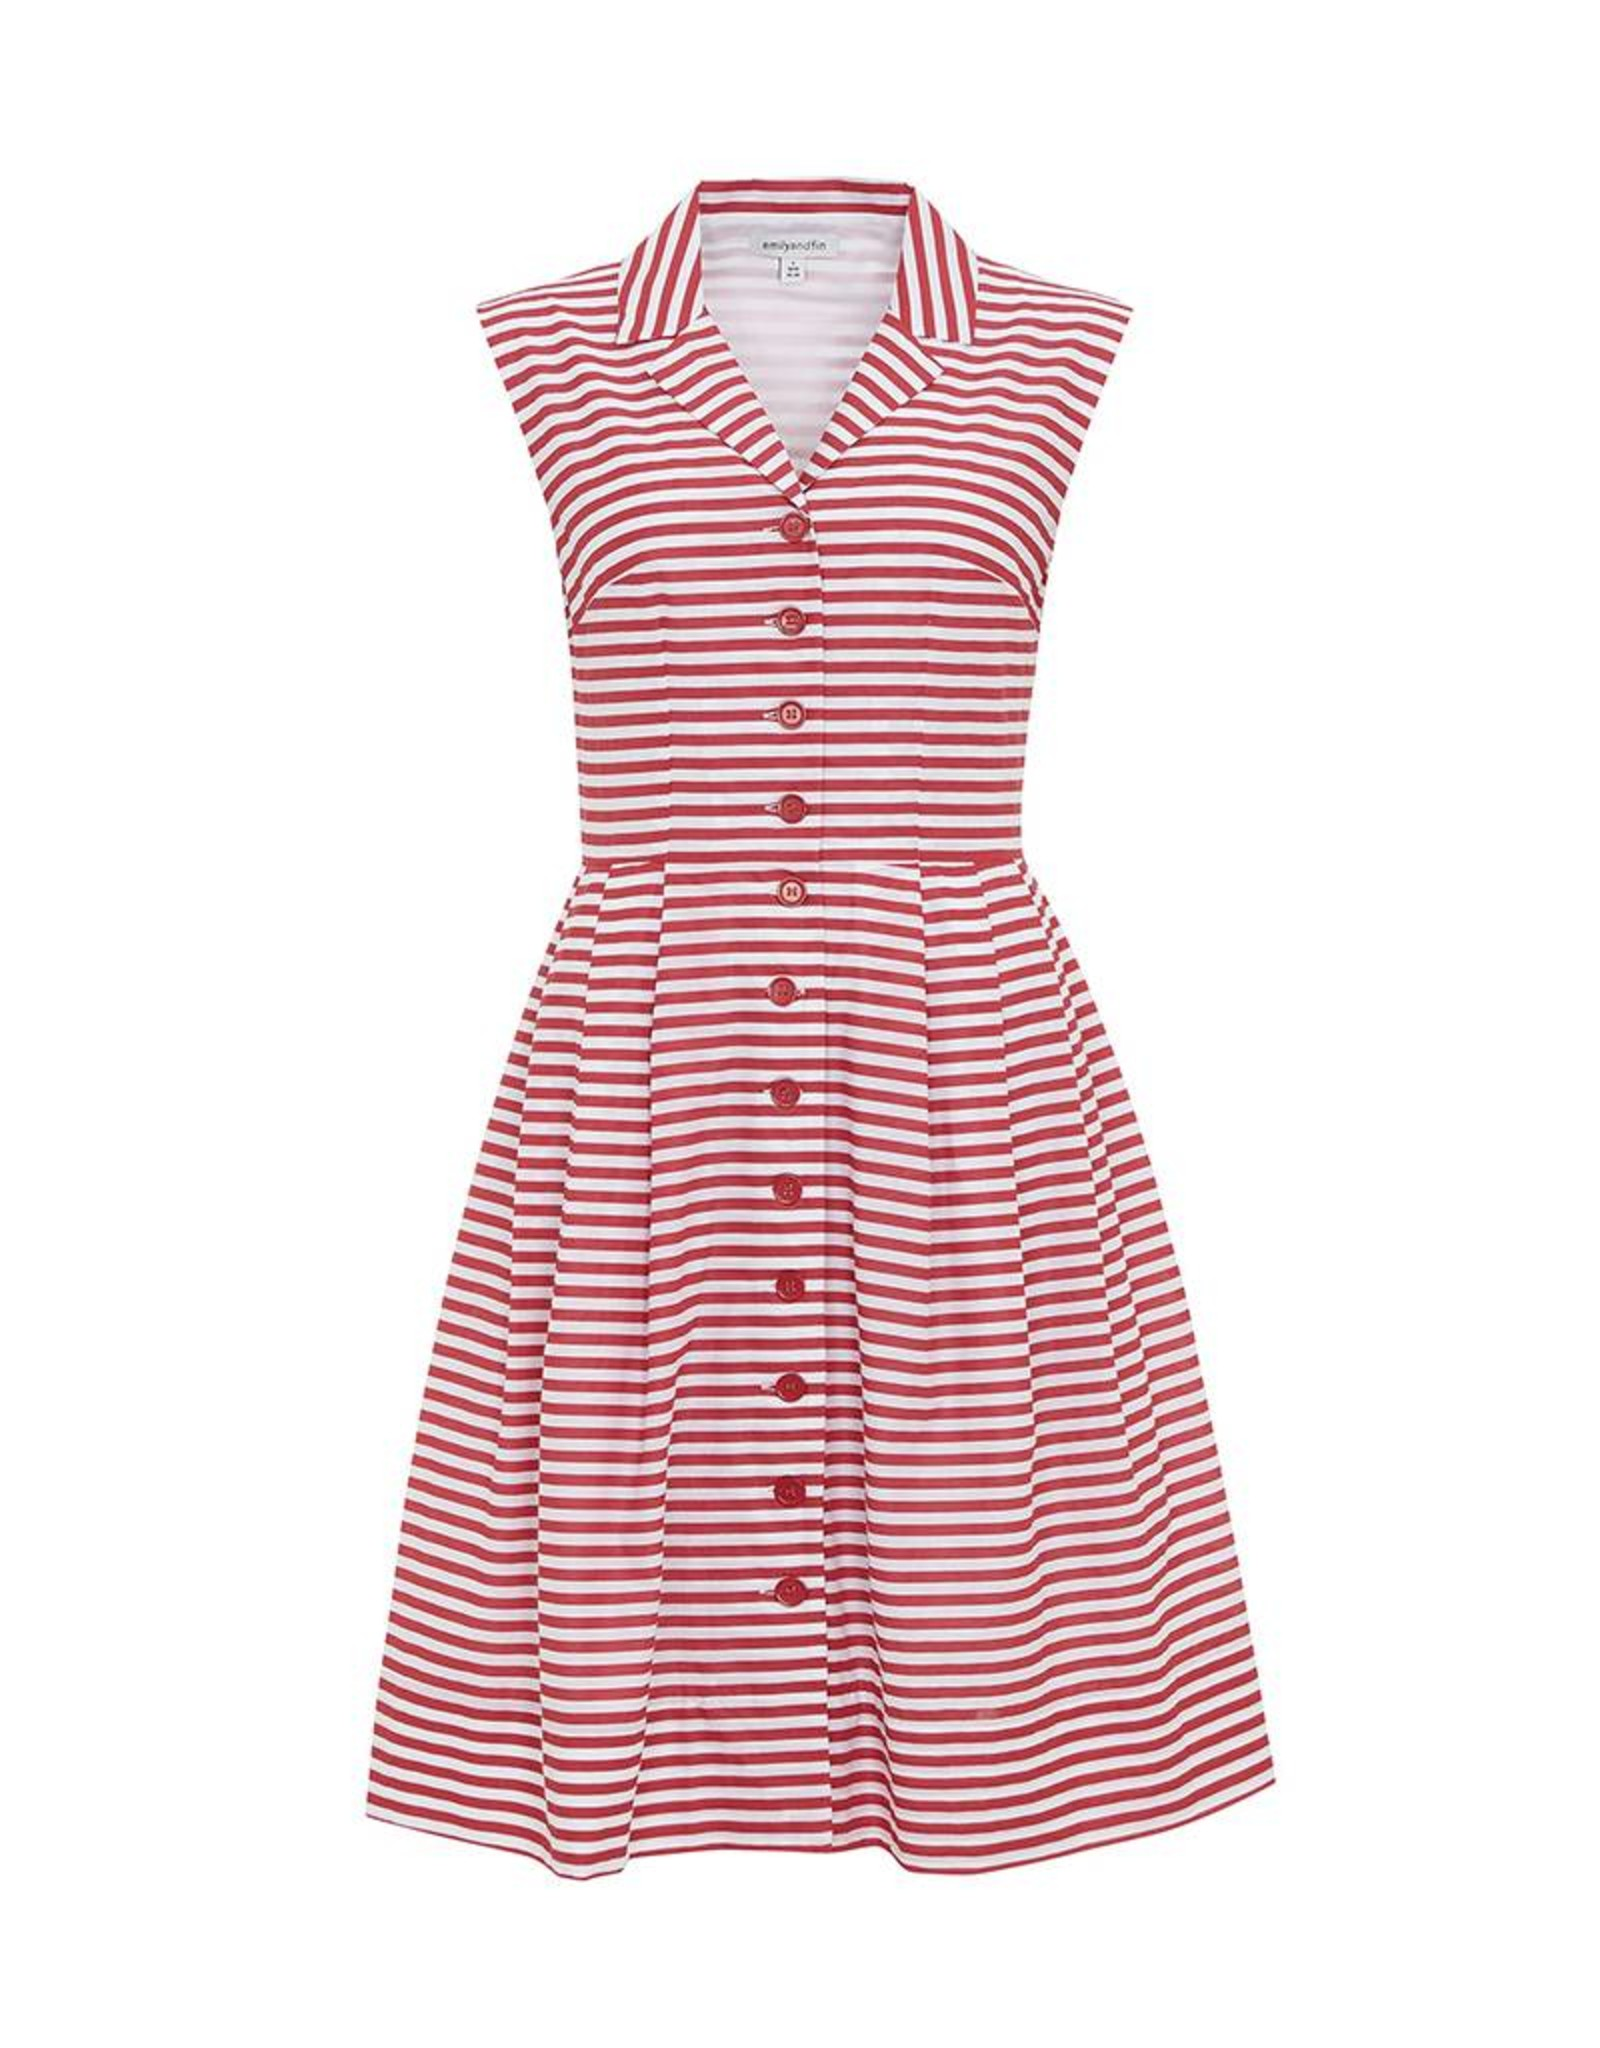 Emily & Fin Frankie Dress in Red and White